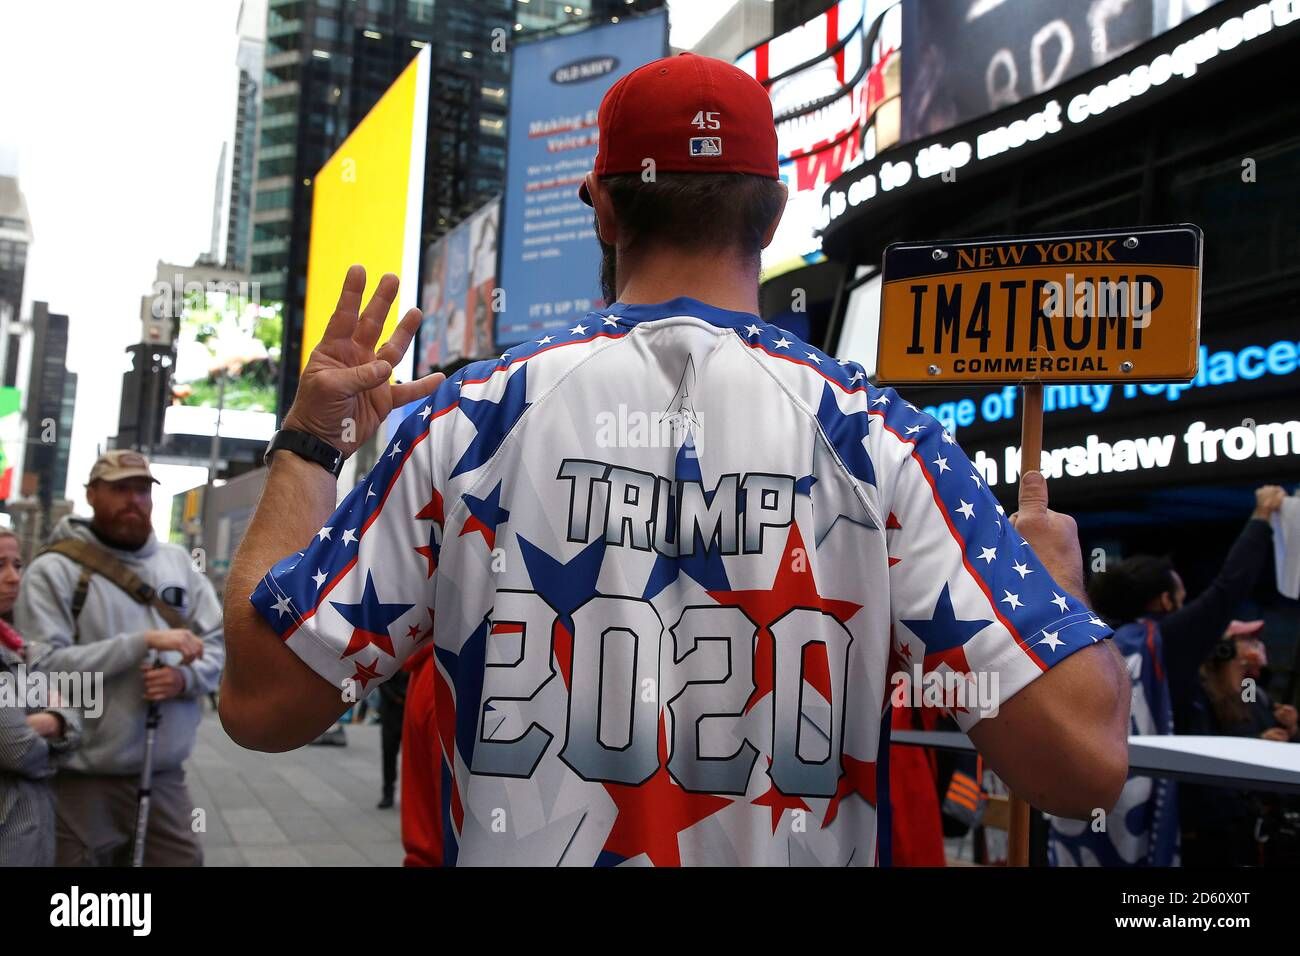 New York, United States. 13th Oct, 2020. Trump supporters march on Fifth Avenue to Times Square as contentious political and judicial topics are being debated in Washington DC. Issues concerning the health of the President and optimism of his re-election resounded among the rally participants. Credit: SOPA Images Limited/Alamy Live News Stock Photo